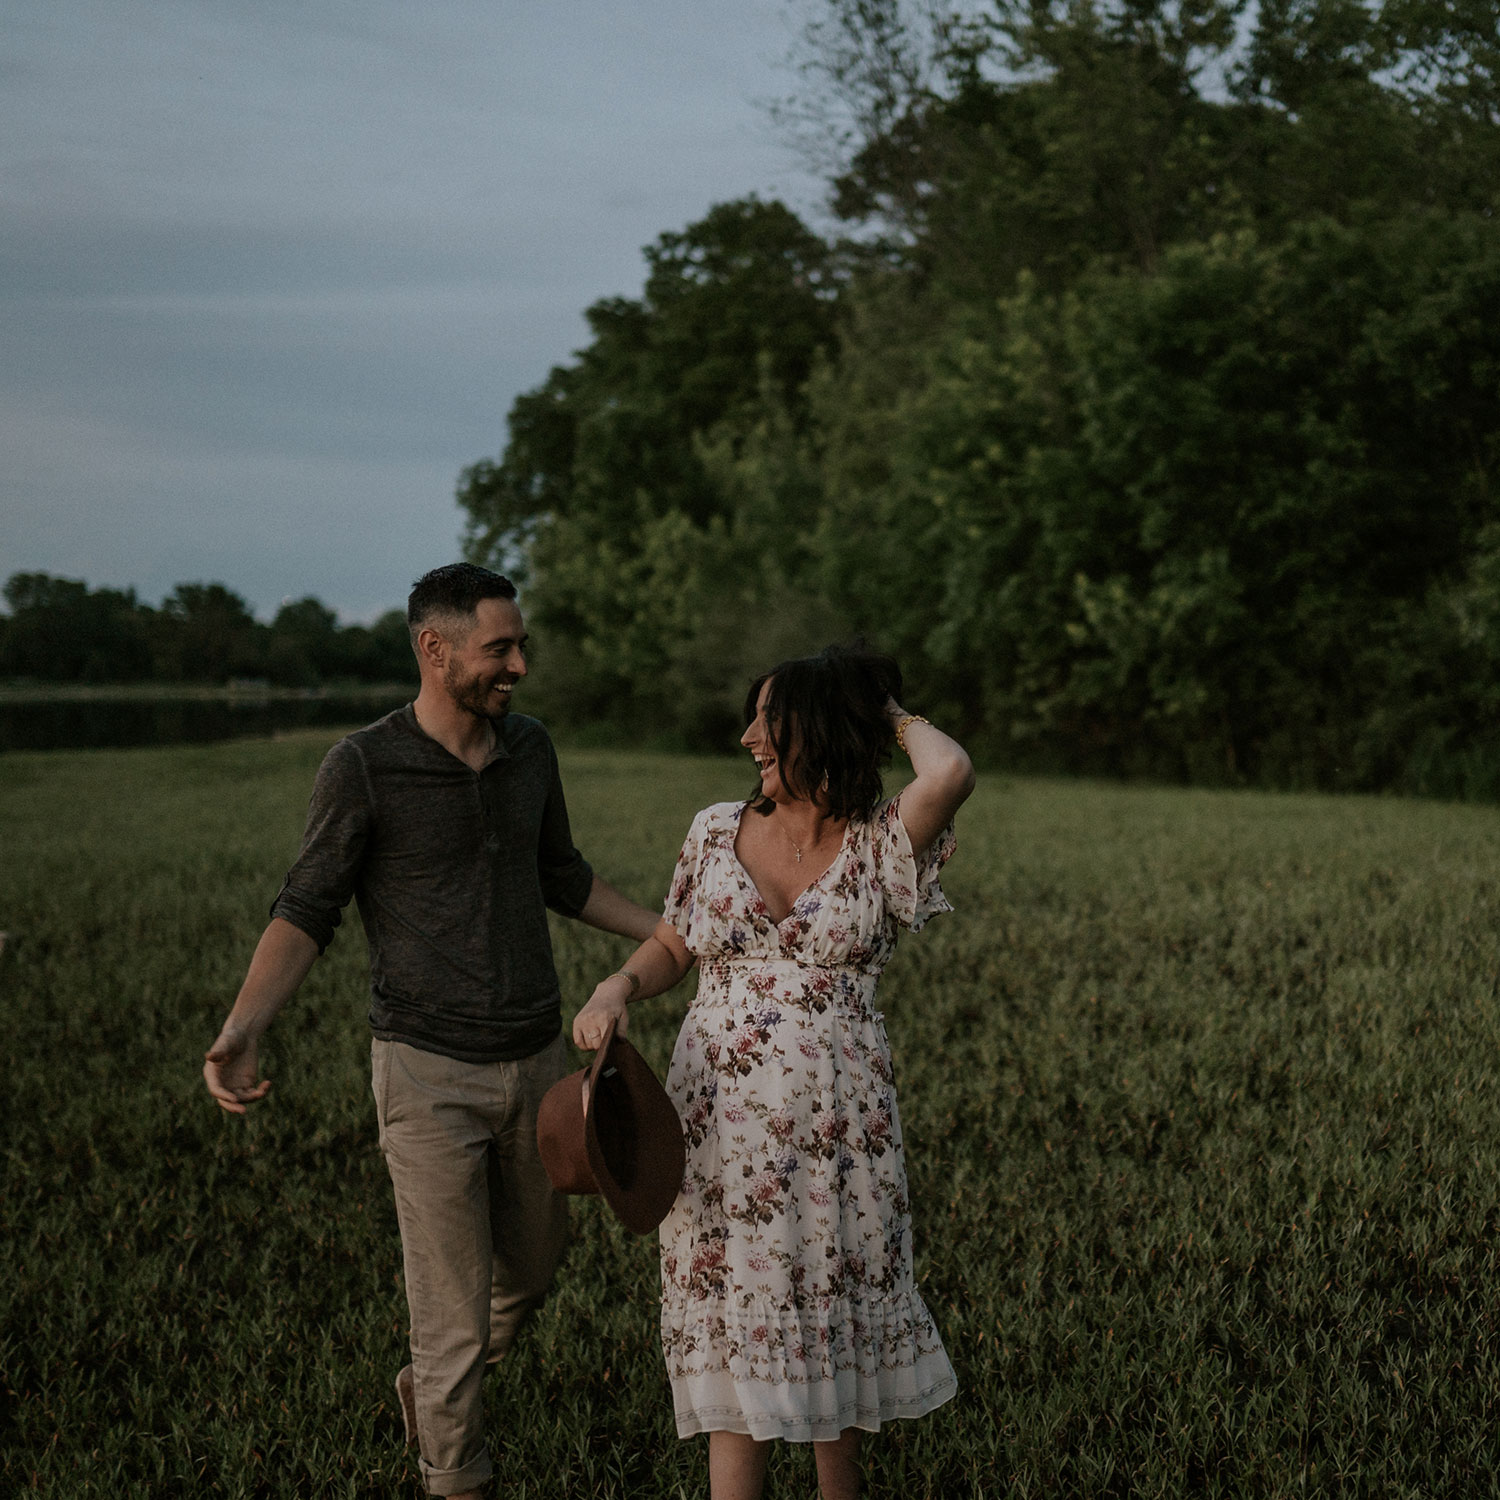 mom-to-be-and-husband-walking-and-laughing-maternity-desmoines-iowa-raelyn-ramey-photography.jpg